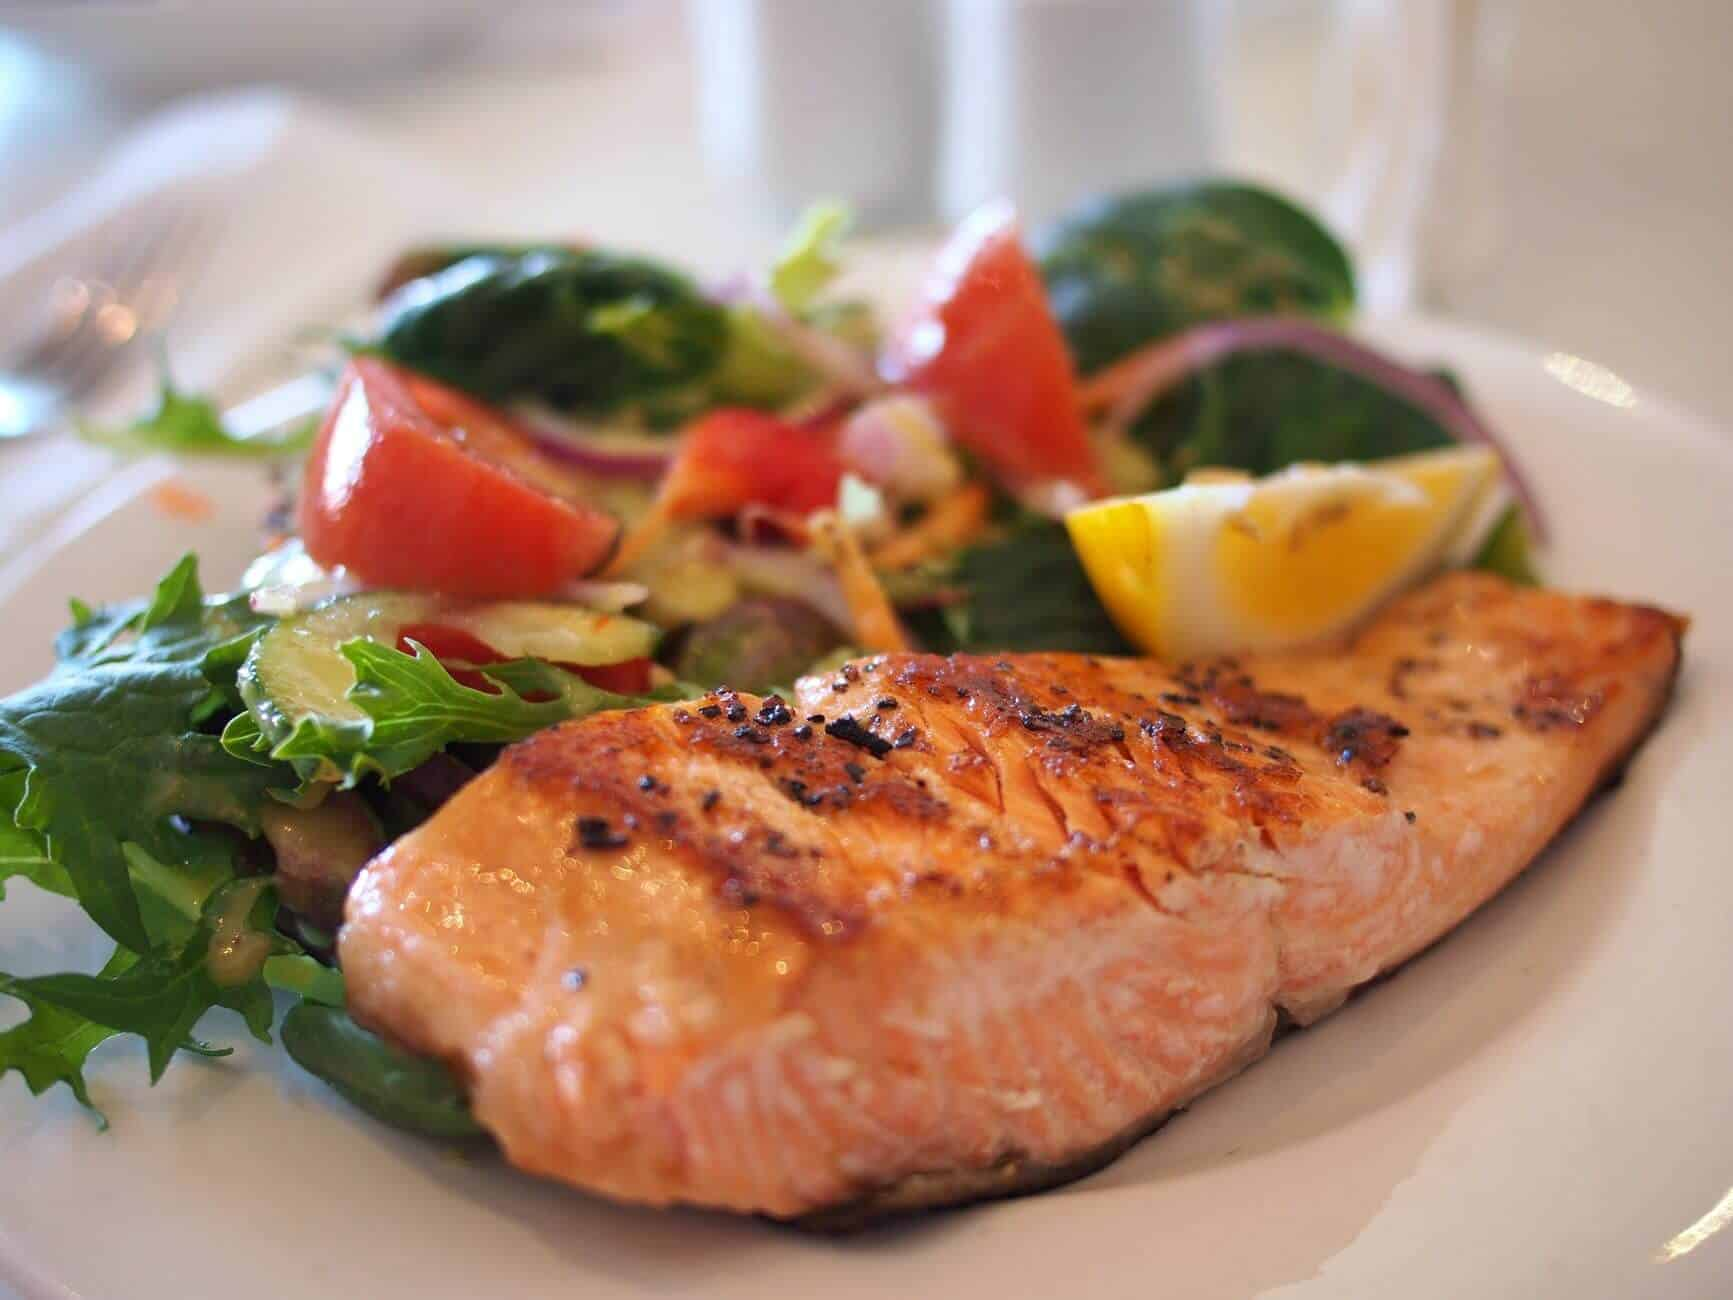 South Beach Diet Facts You Don't Want to Miss